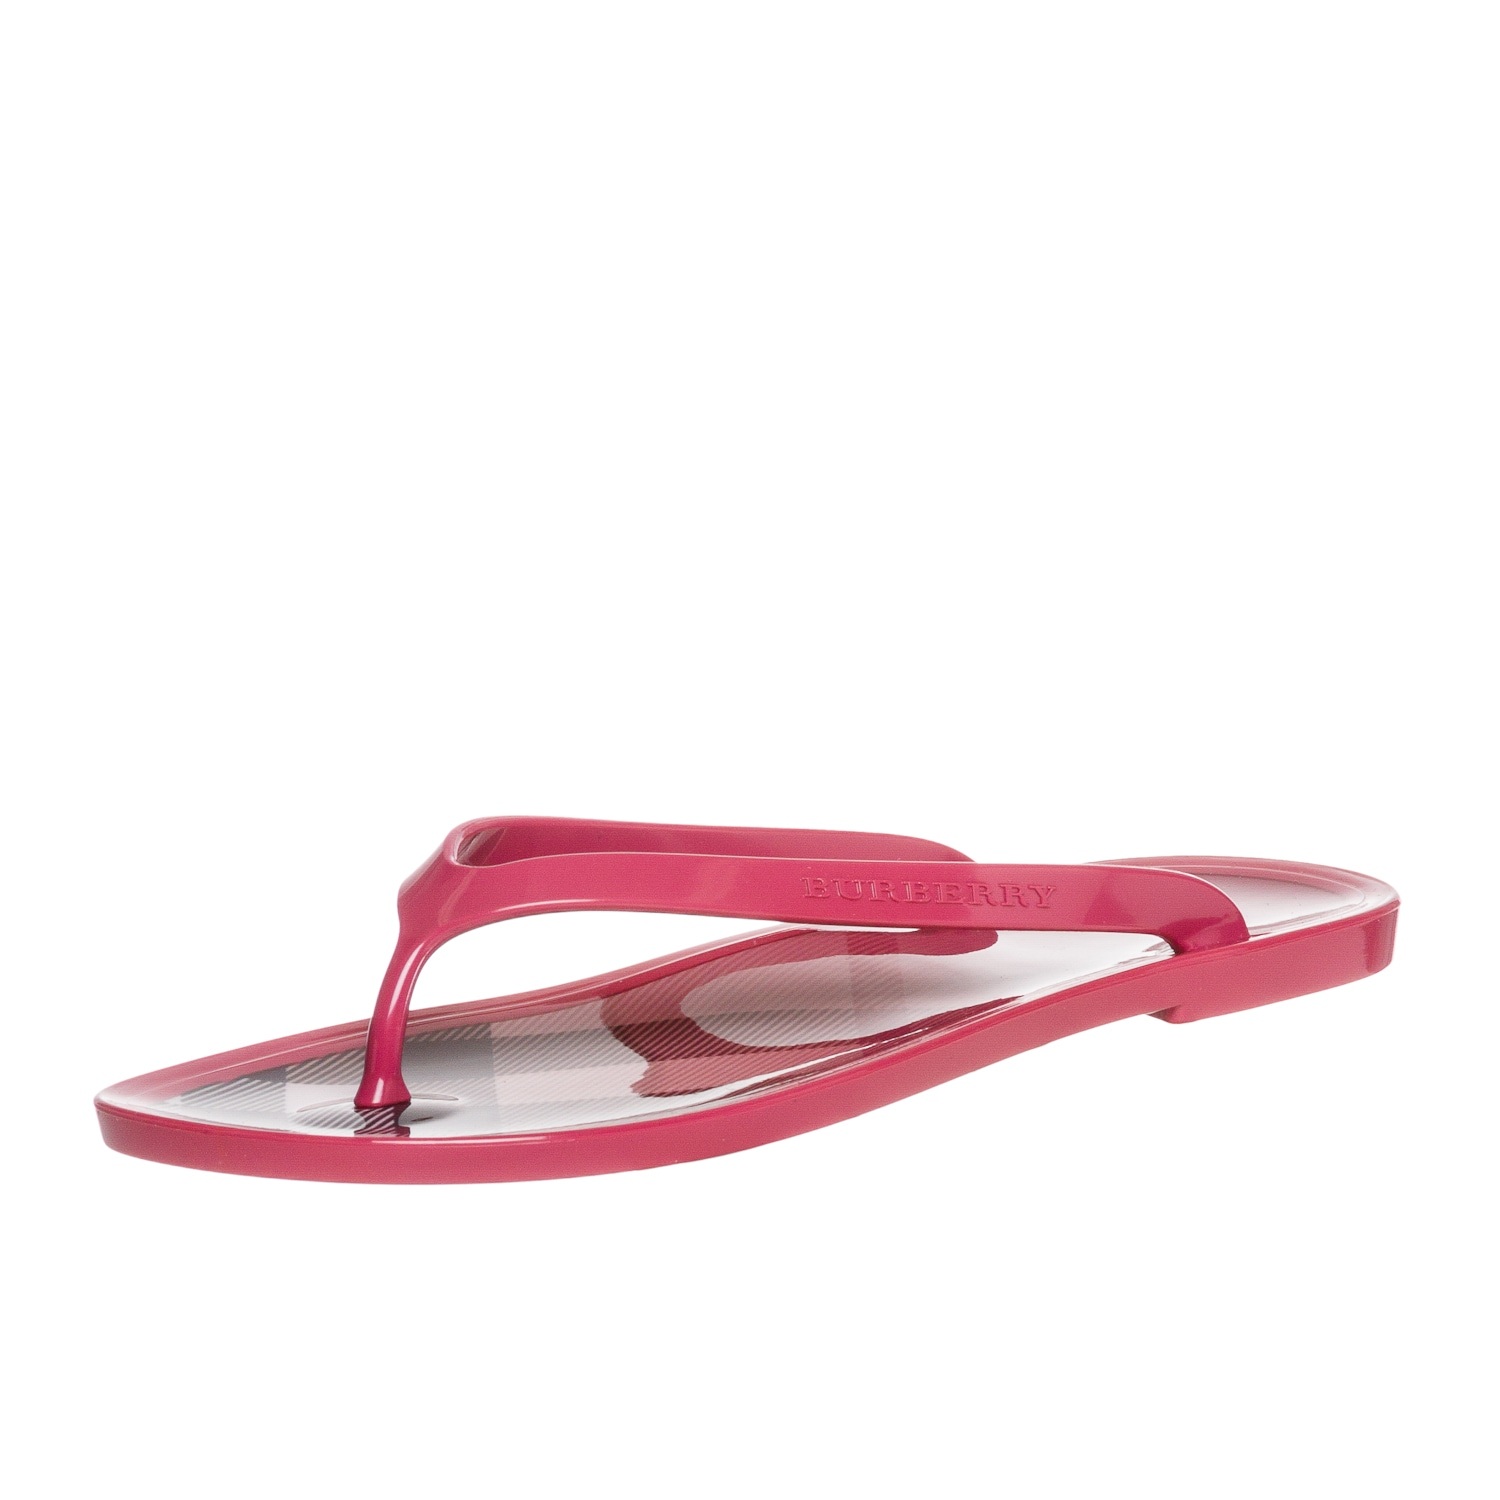 Burberry Women's 'Nova Check' Pink Jelly Flip-Flops